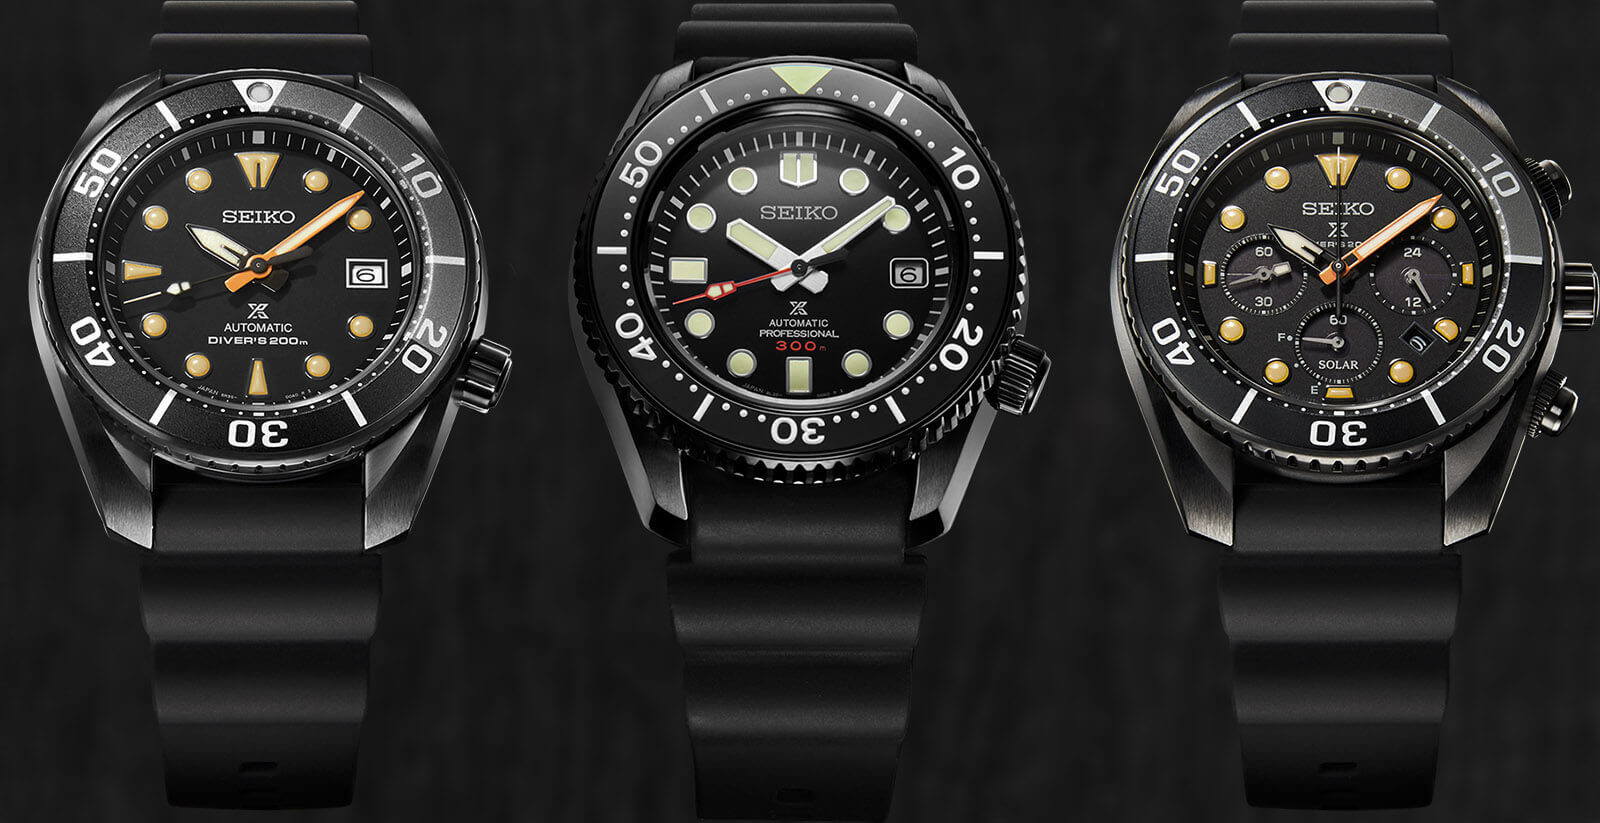 Seiko Prospex Black Series Diver Limited Editions